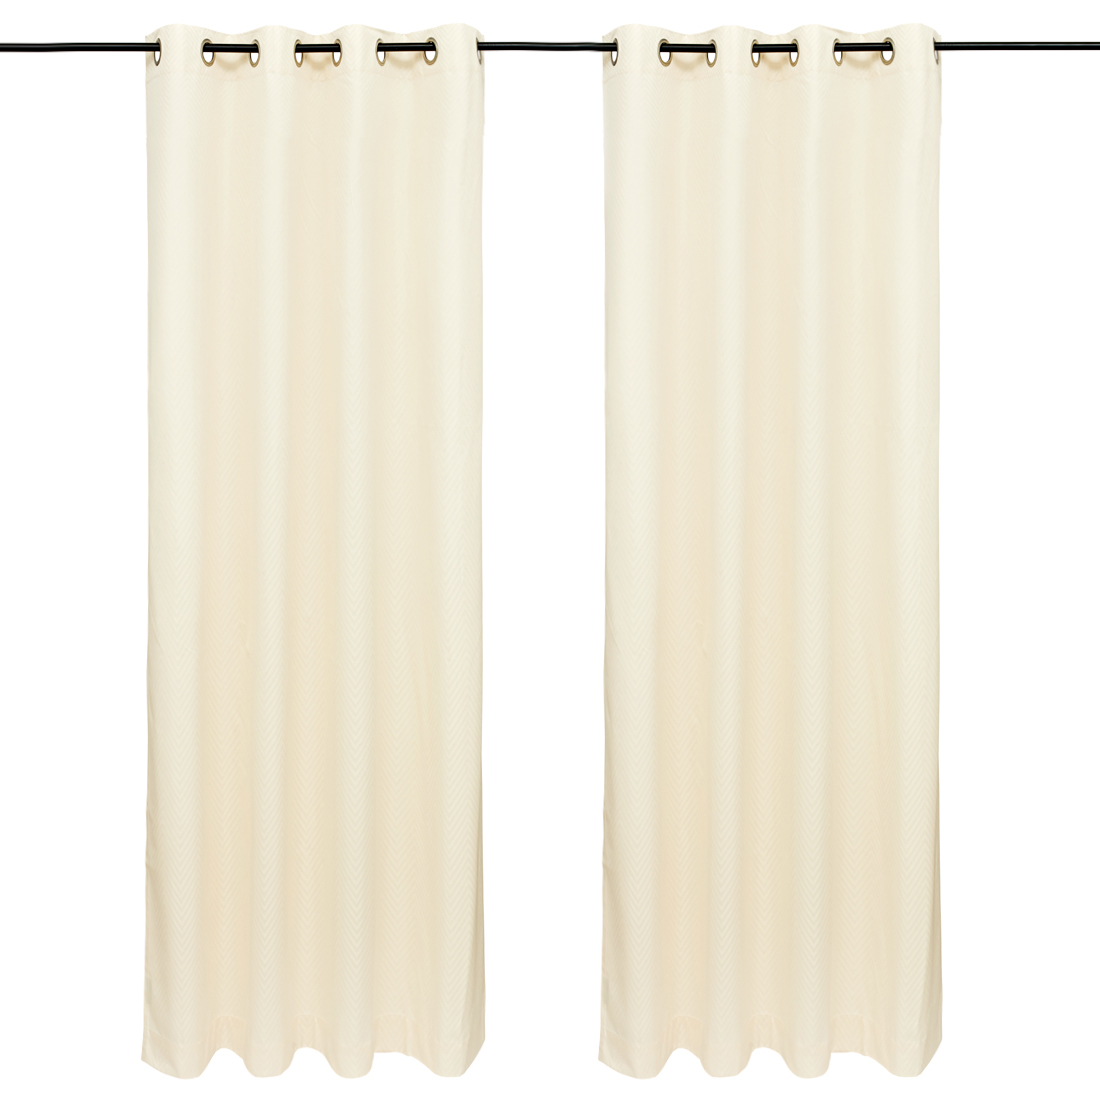 Emilia Jacquard set of 2 Polyester Door Curtains in Off white Colour by Living Essence